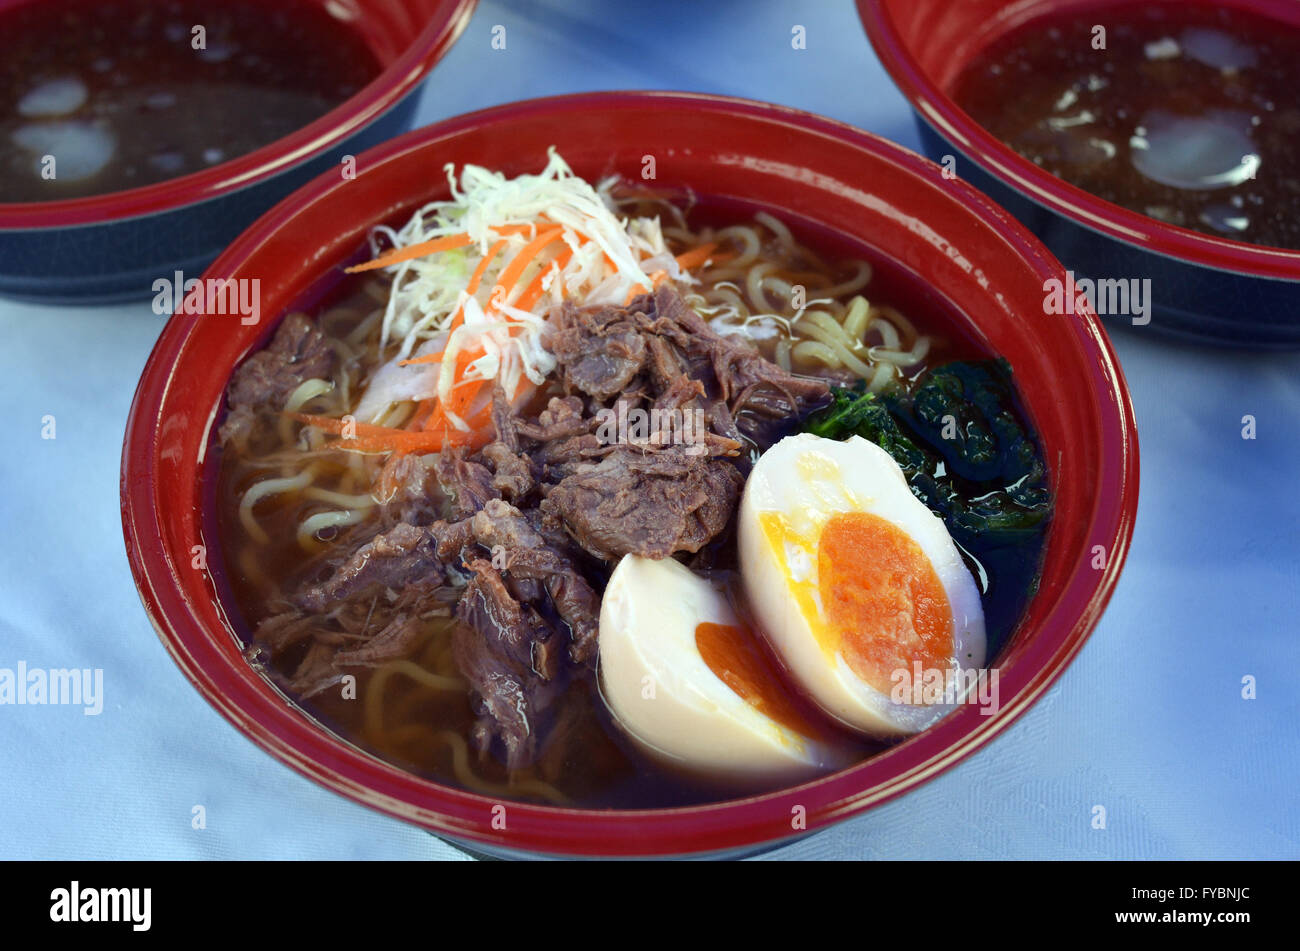 Japanese noodle soup dish Ramen served on restaurant table. - Stock Image